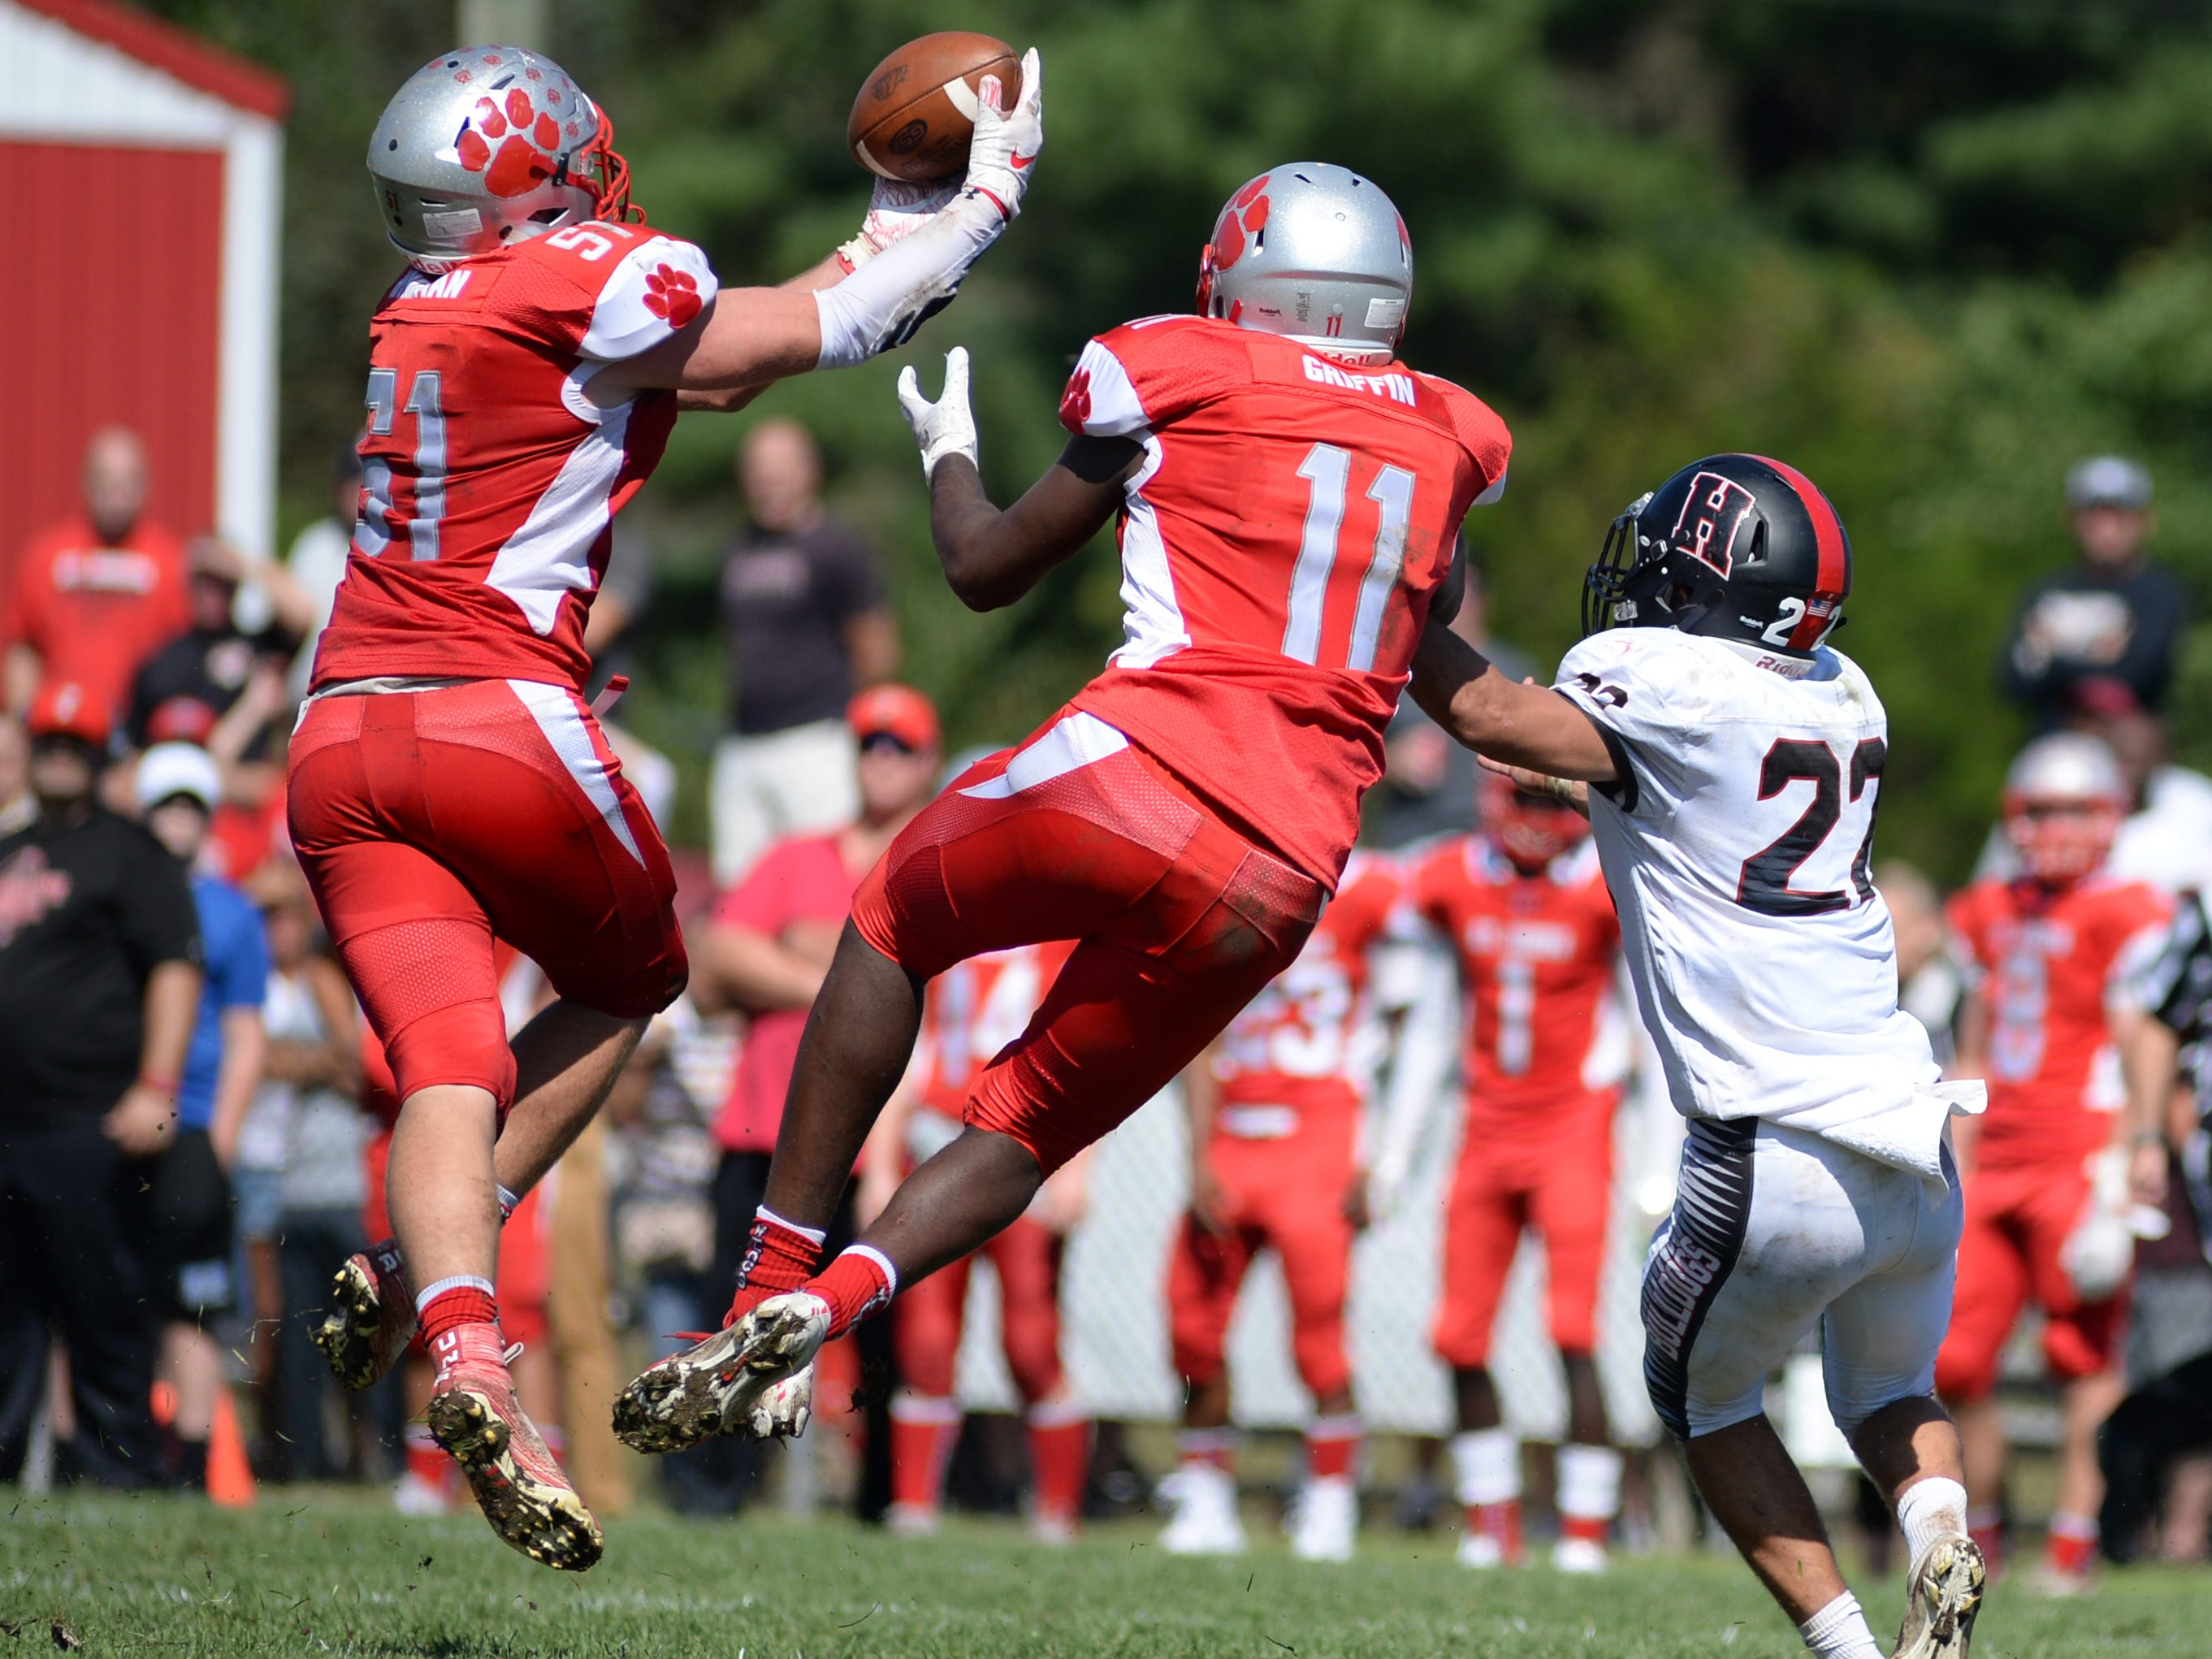 St. Joseph's Bobby Hyndman intercepts a Haddonfield pass intended for Chris Brown during Saturday's game, Sept. 29, 2018.